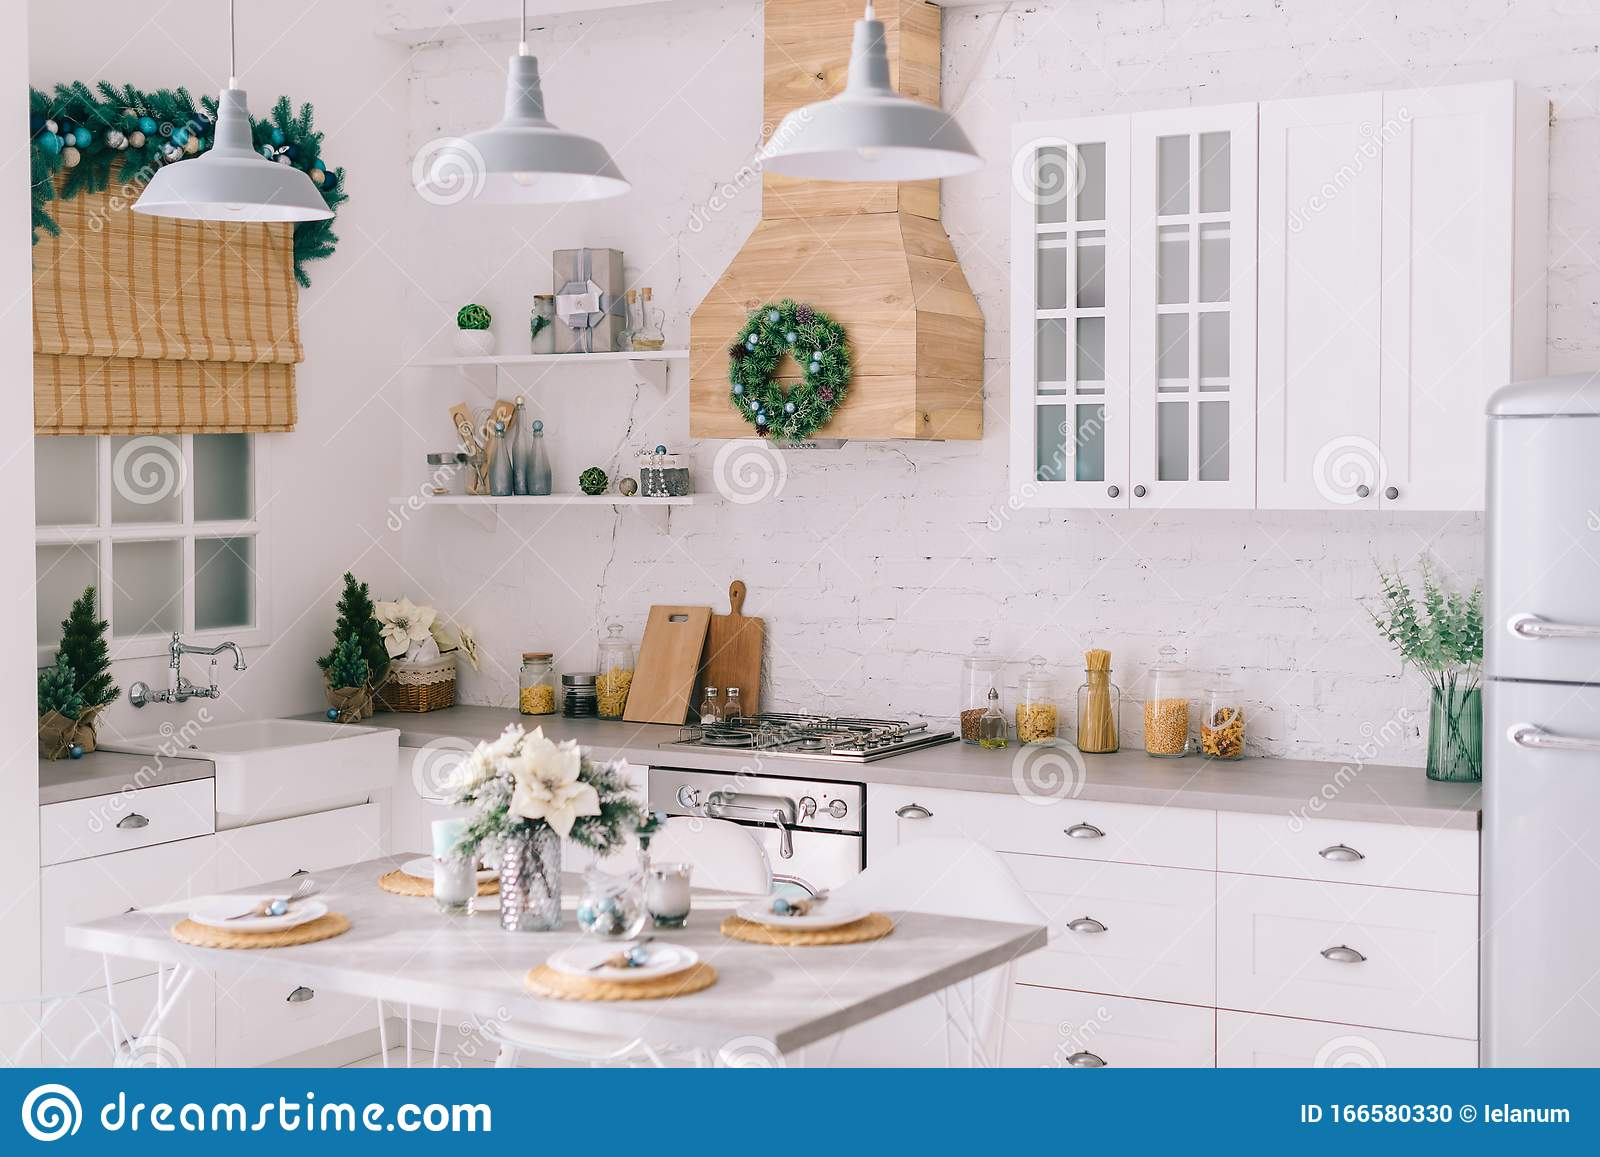 Interior Of A Bright Modern Kitchen In Vintage Style Decorated With Christmas Decor Stock Photo Image Of Cooking Furniture 166580330